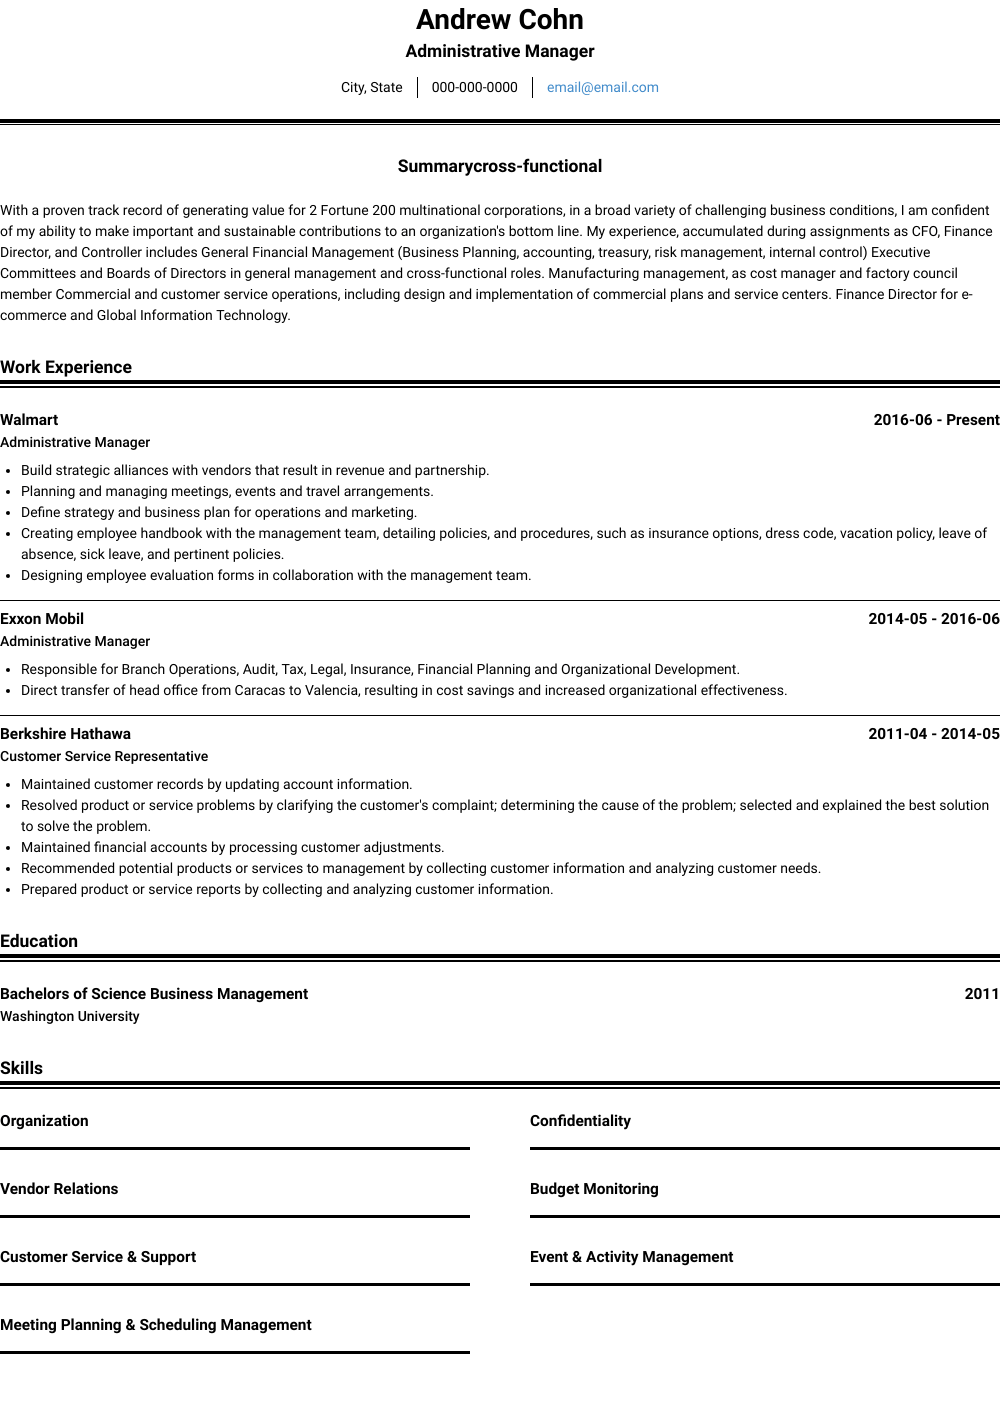 Administration Resume Samples Amp Templates Visualcv